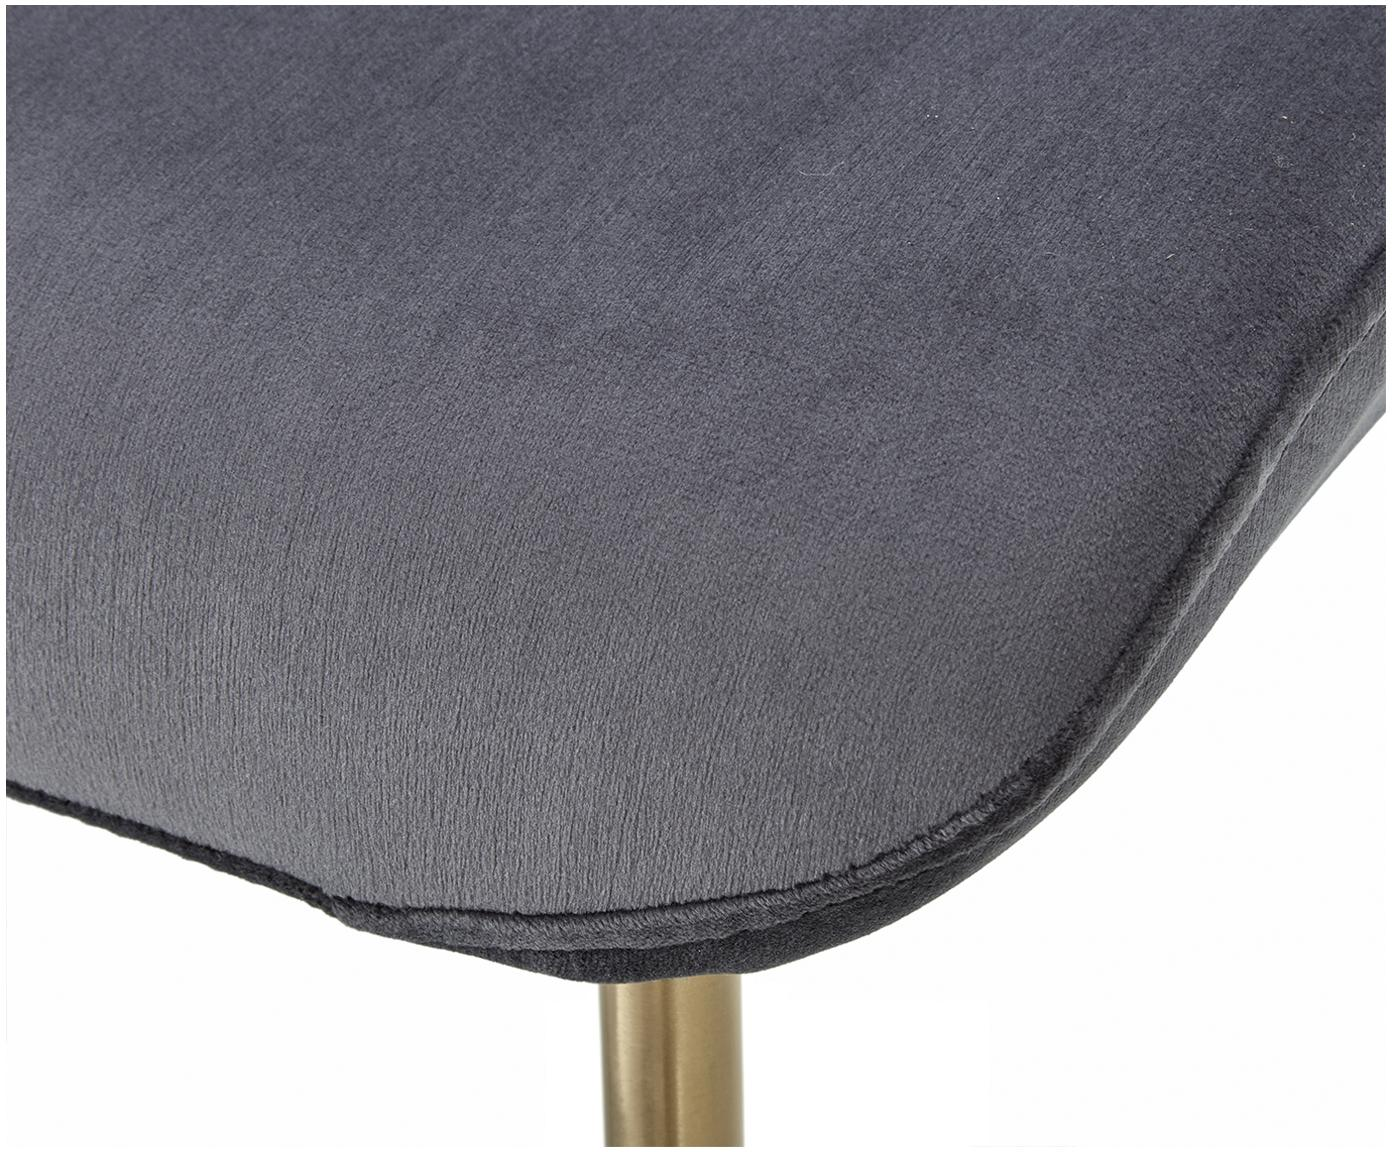 Chaise velours rembourré Tess, Velours anthracite, pieds or